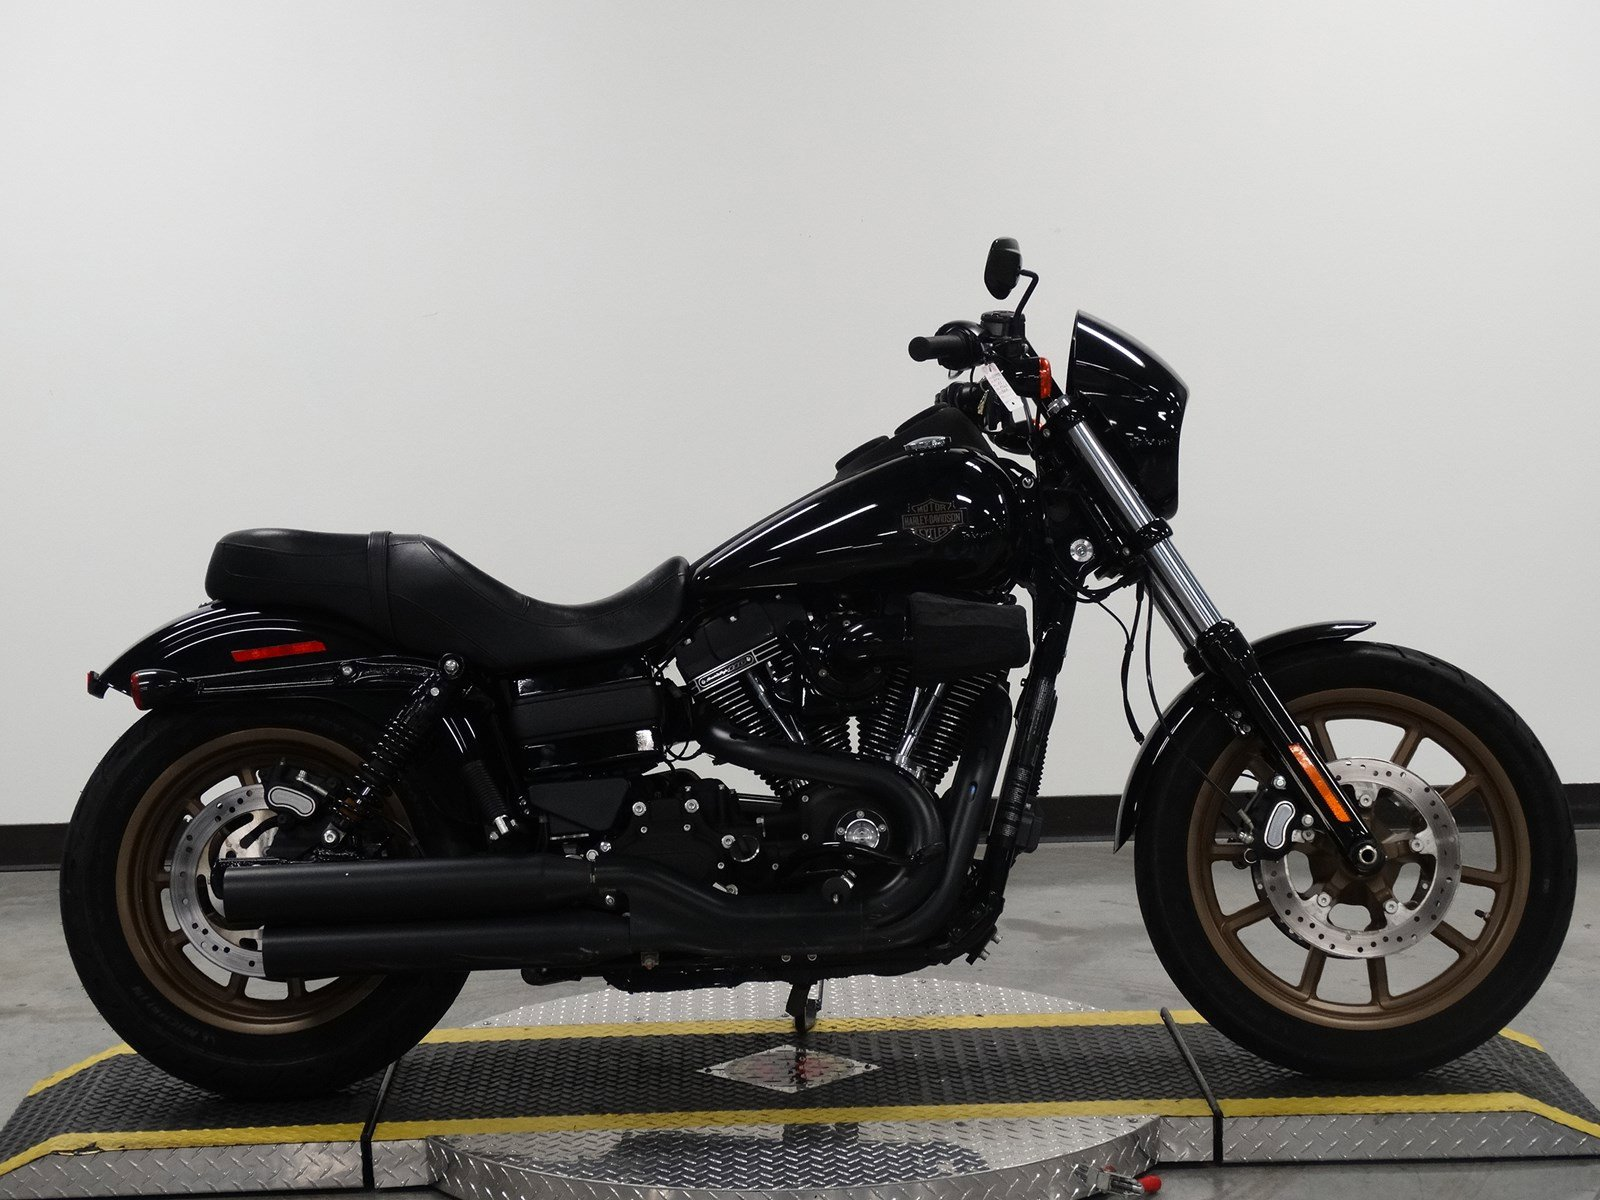 Pre-Owned 2016 Harley-Davidson Dyna Low Rider S FXDLS